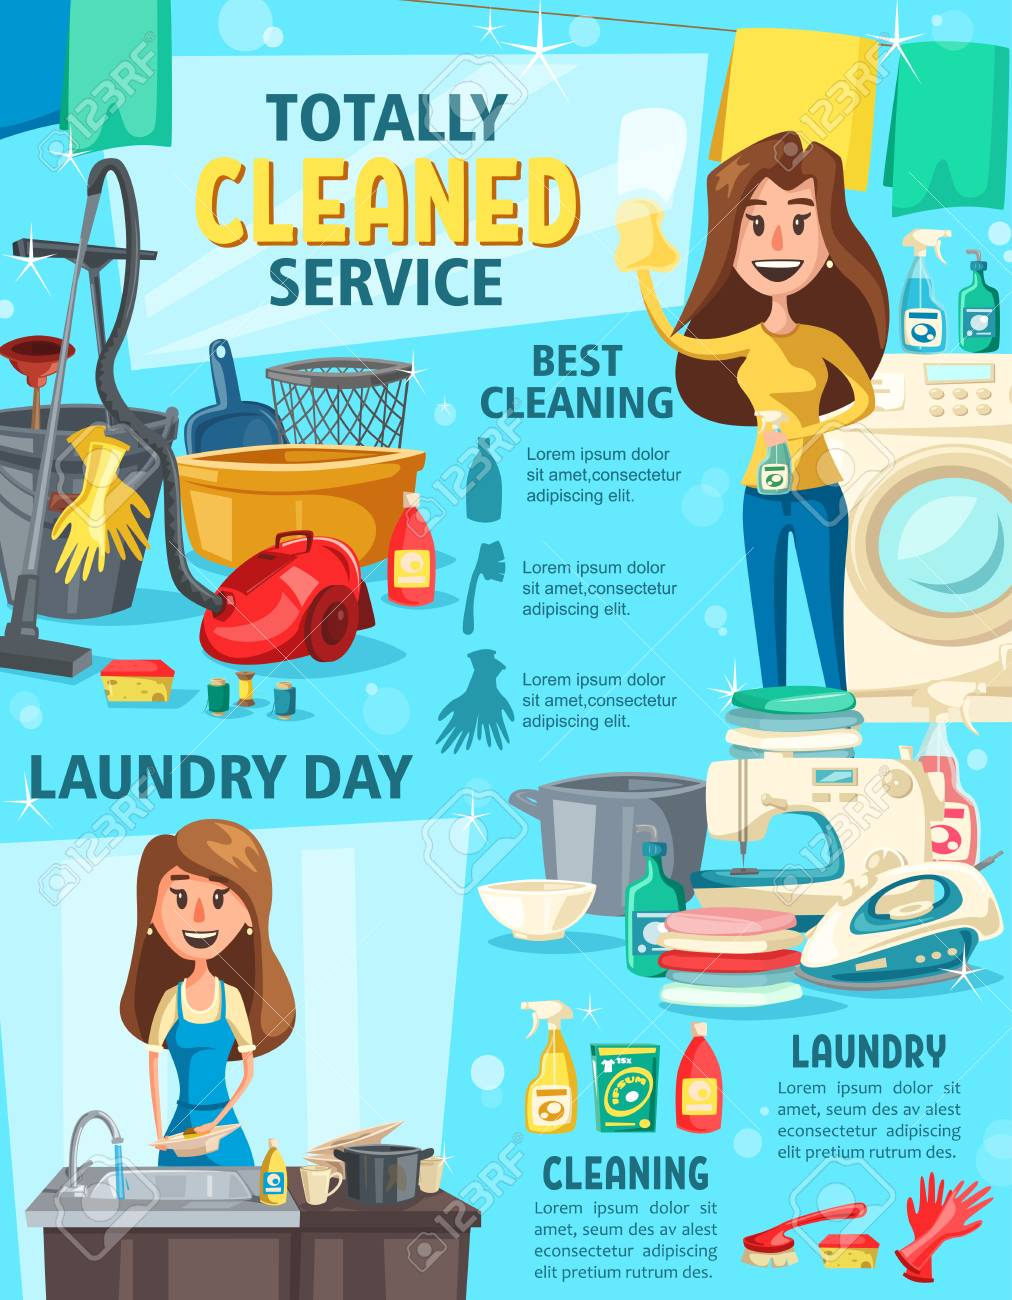 House cleaning and housework service, household equipment and work tool. Brush, mop and detergent spray, sponge, bucket, vacuum cleaner and washing machine for housework chores poster design - 108571309